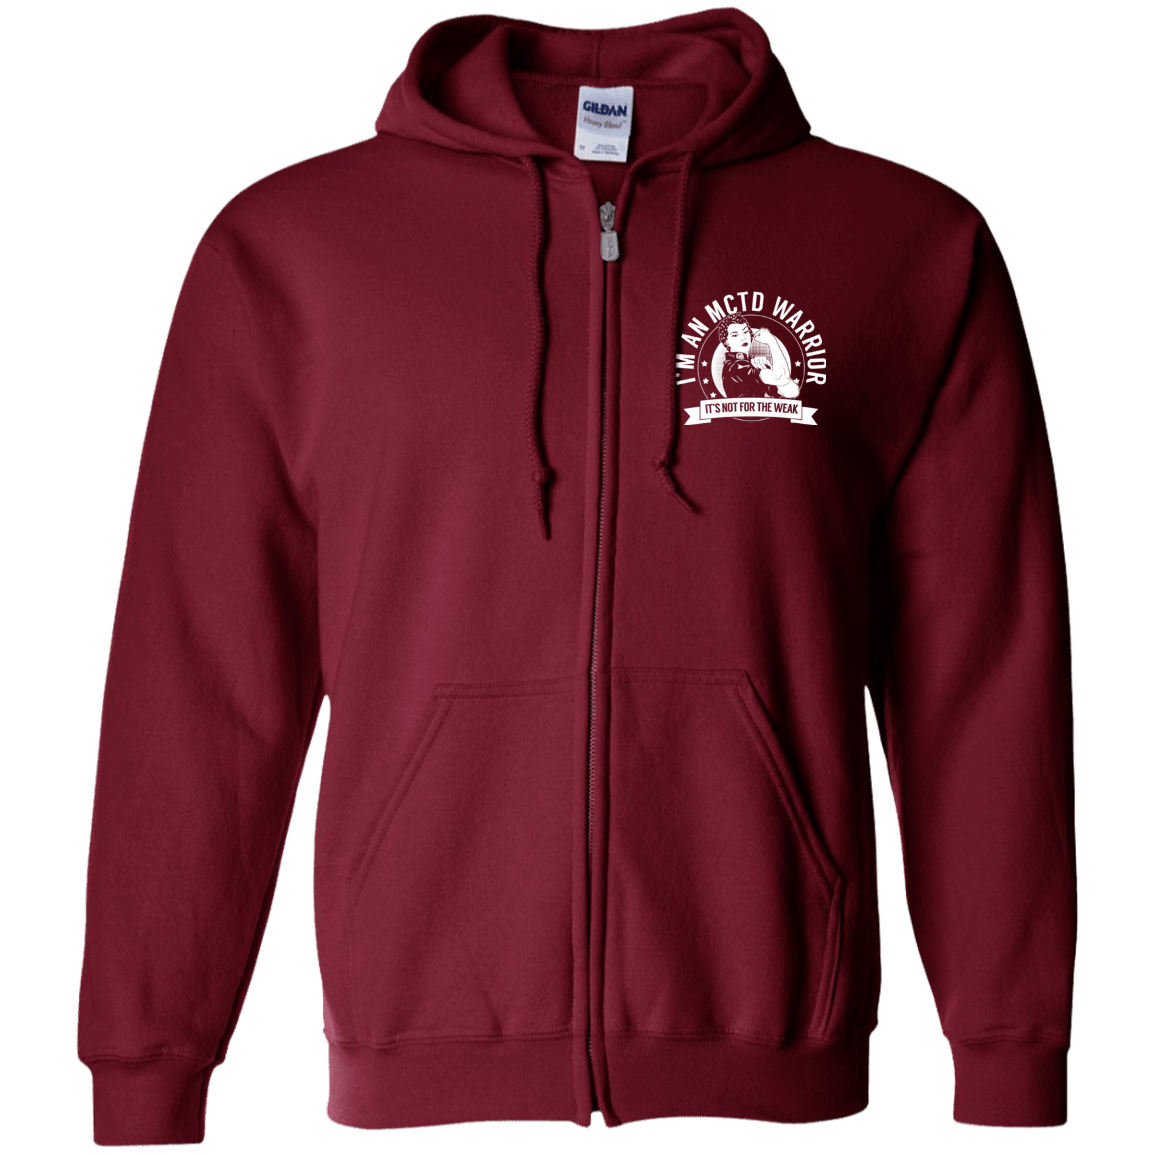 Mixed Connective Tissue Disease - MCTD Warrior NFTW Zip Up Hooded Sweatshirt - The Unchargeables